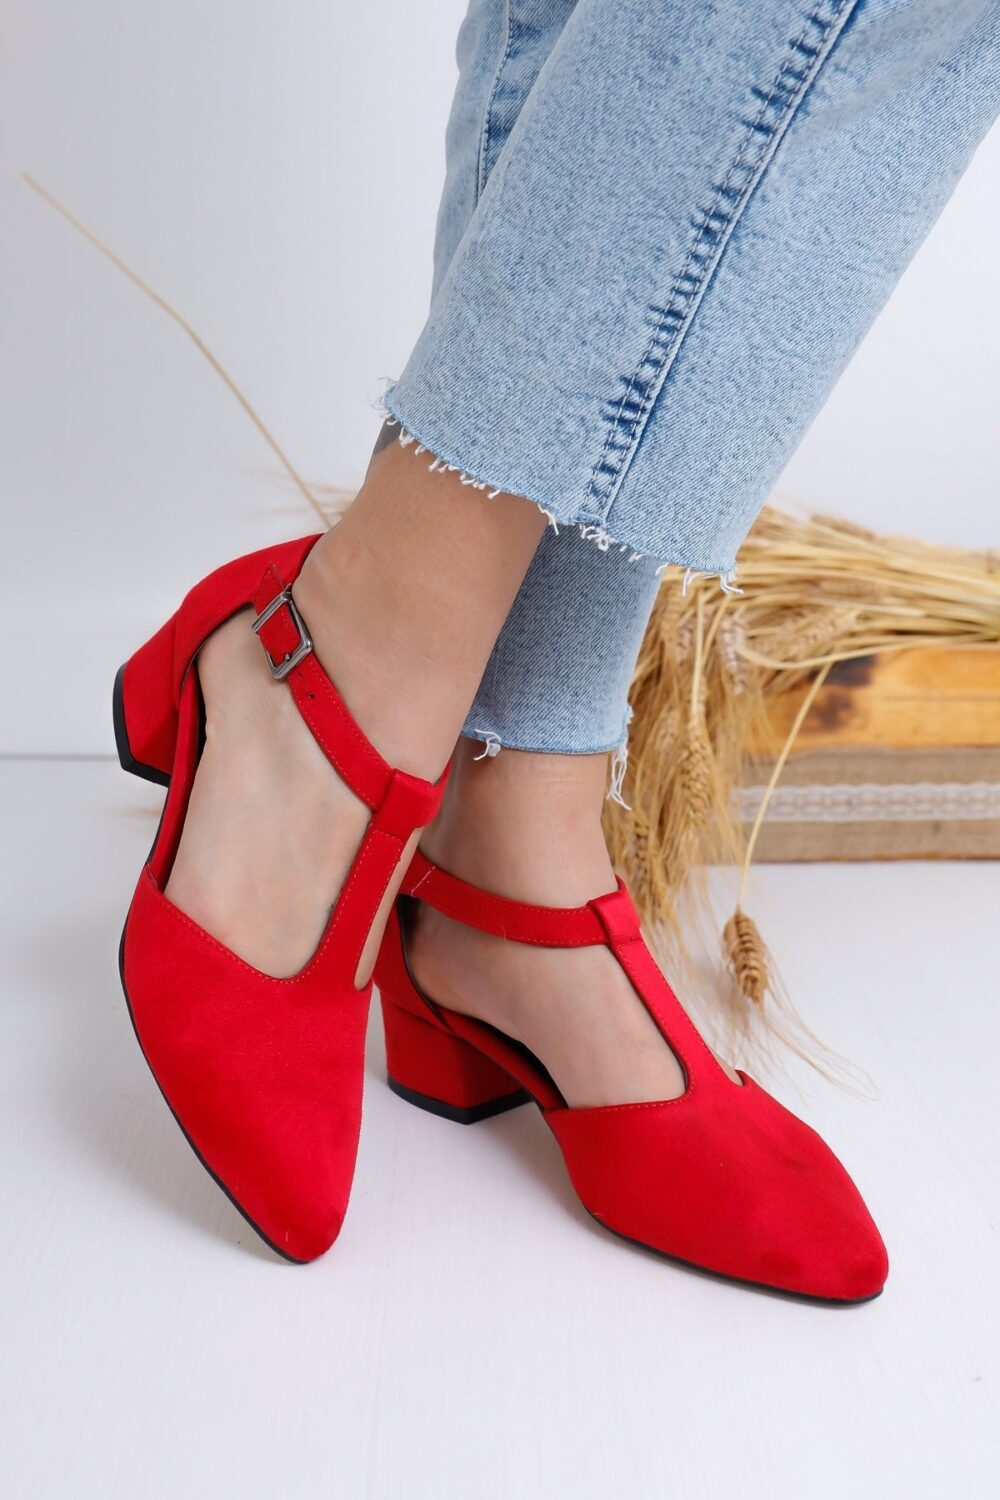 Red Mary Janes, T-strap Shoes, Bridal Red Suede Heels, Low Block Wedding Shoes For Bride, Boho Heels